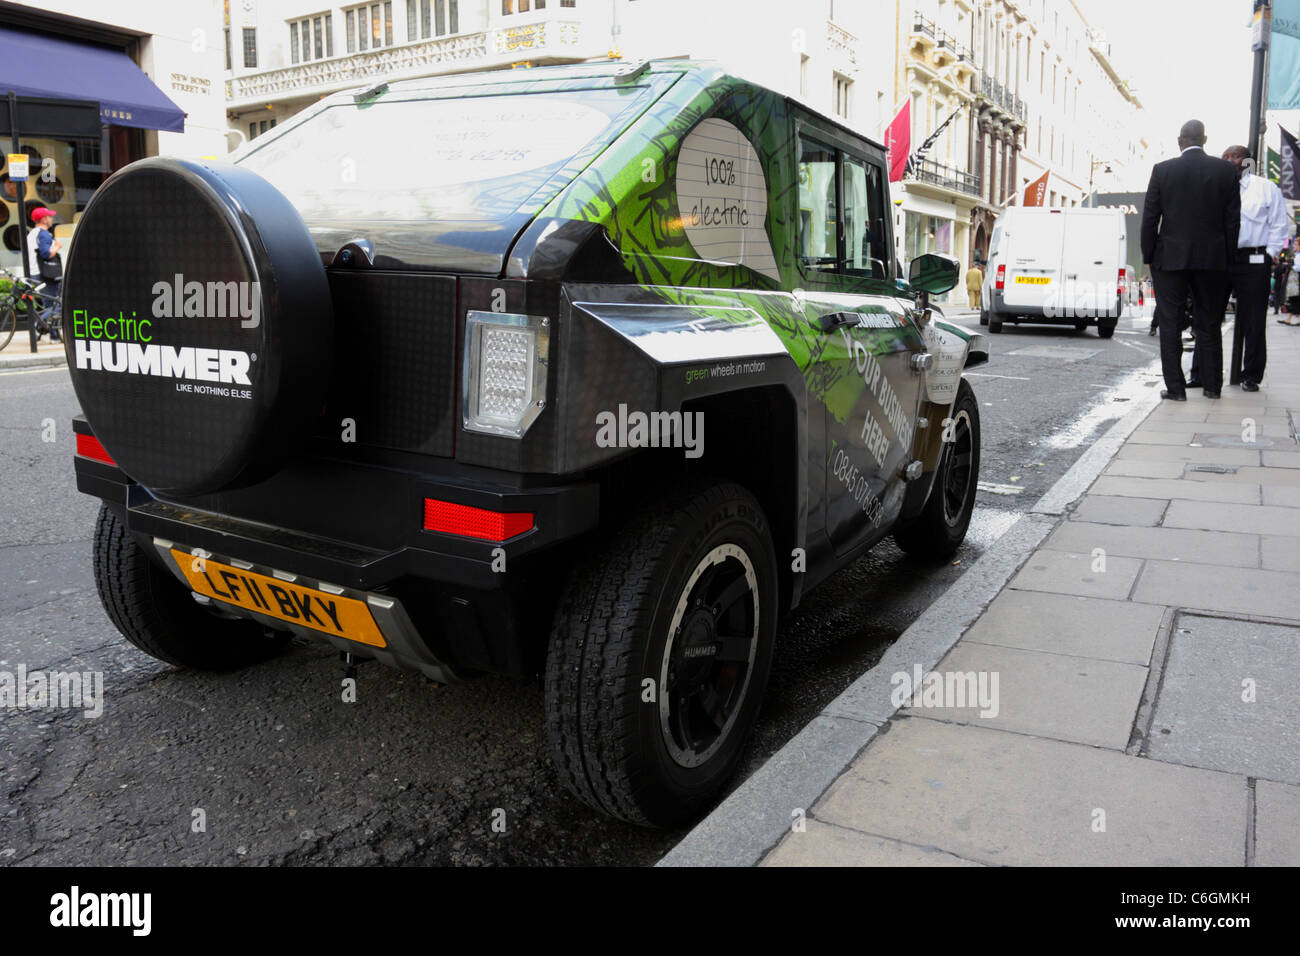 An Mev Hummer Hx Tm Electric Vehicle Parked In New Bond Street Stock